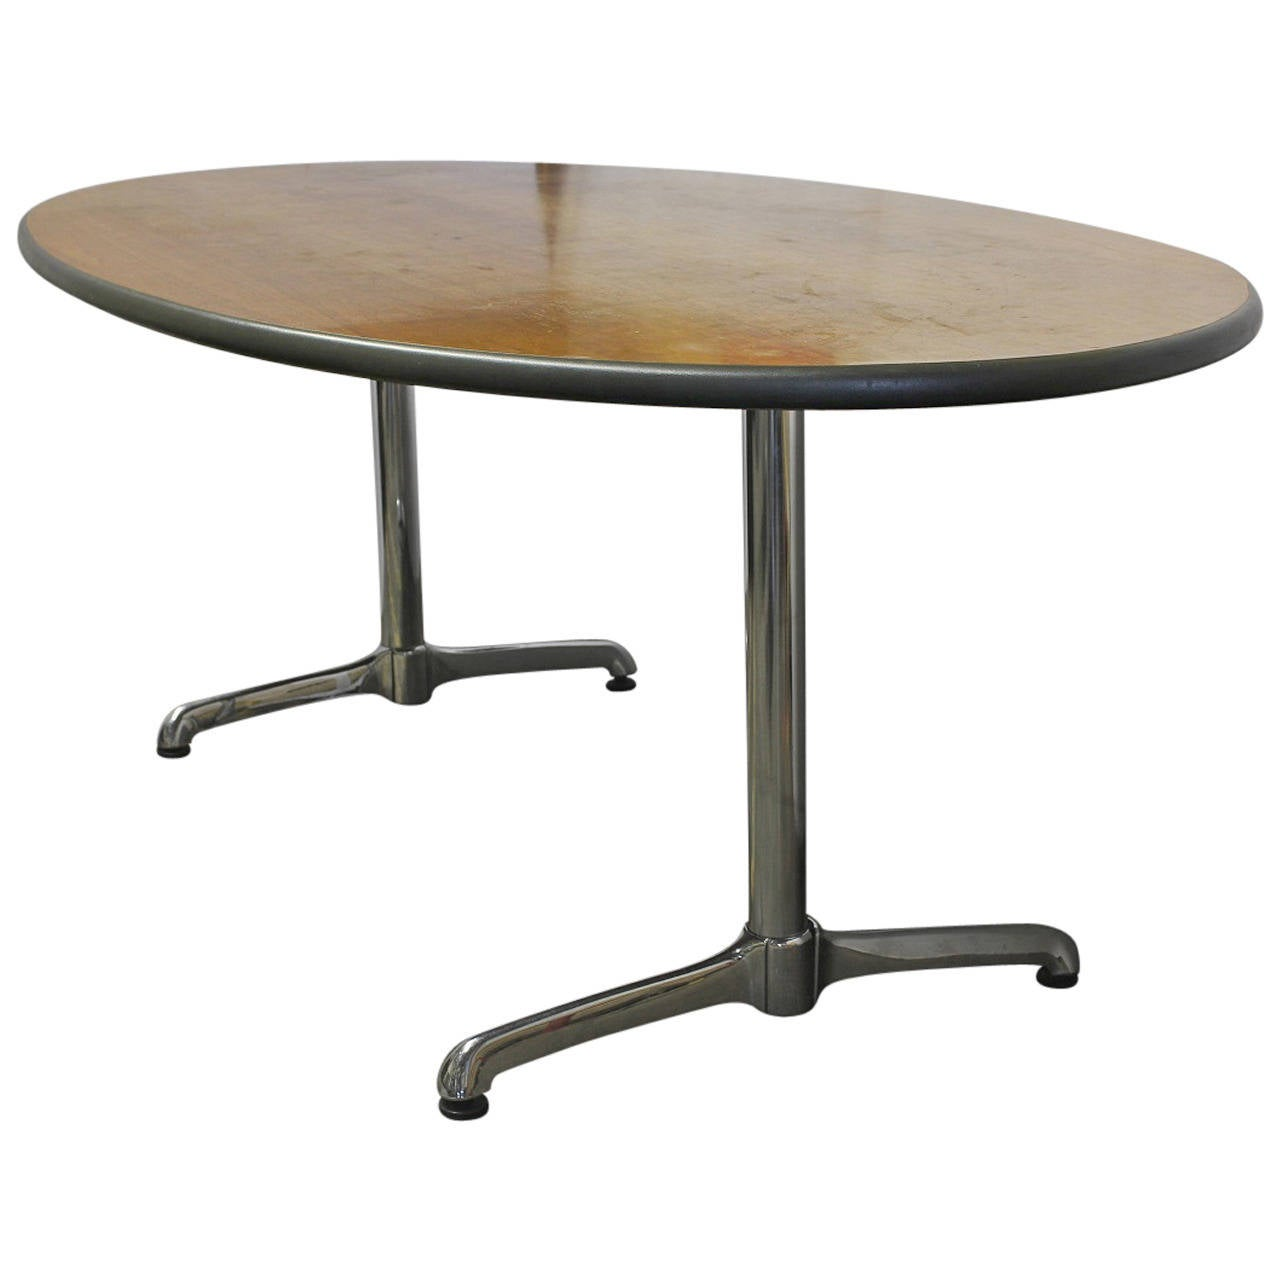 Long Dining Tables For Sale: Long Oval Dining Table Or Desk By Herman Miller For Sale